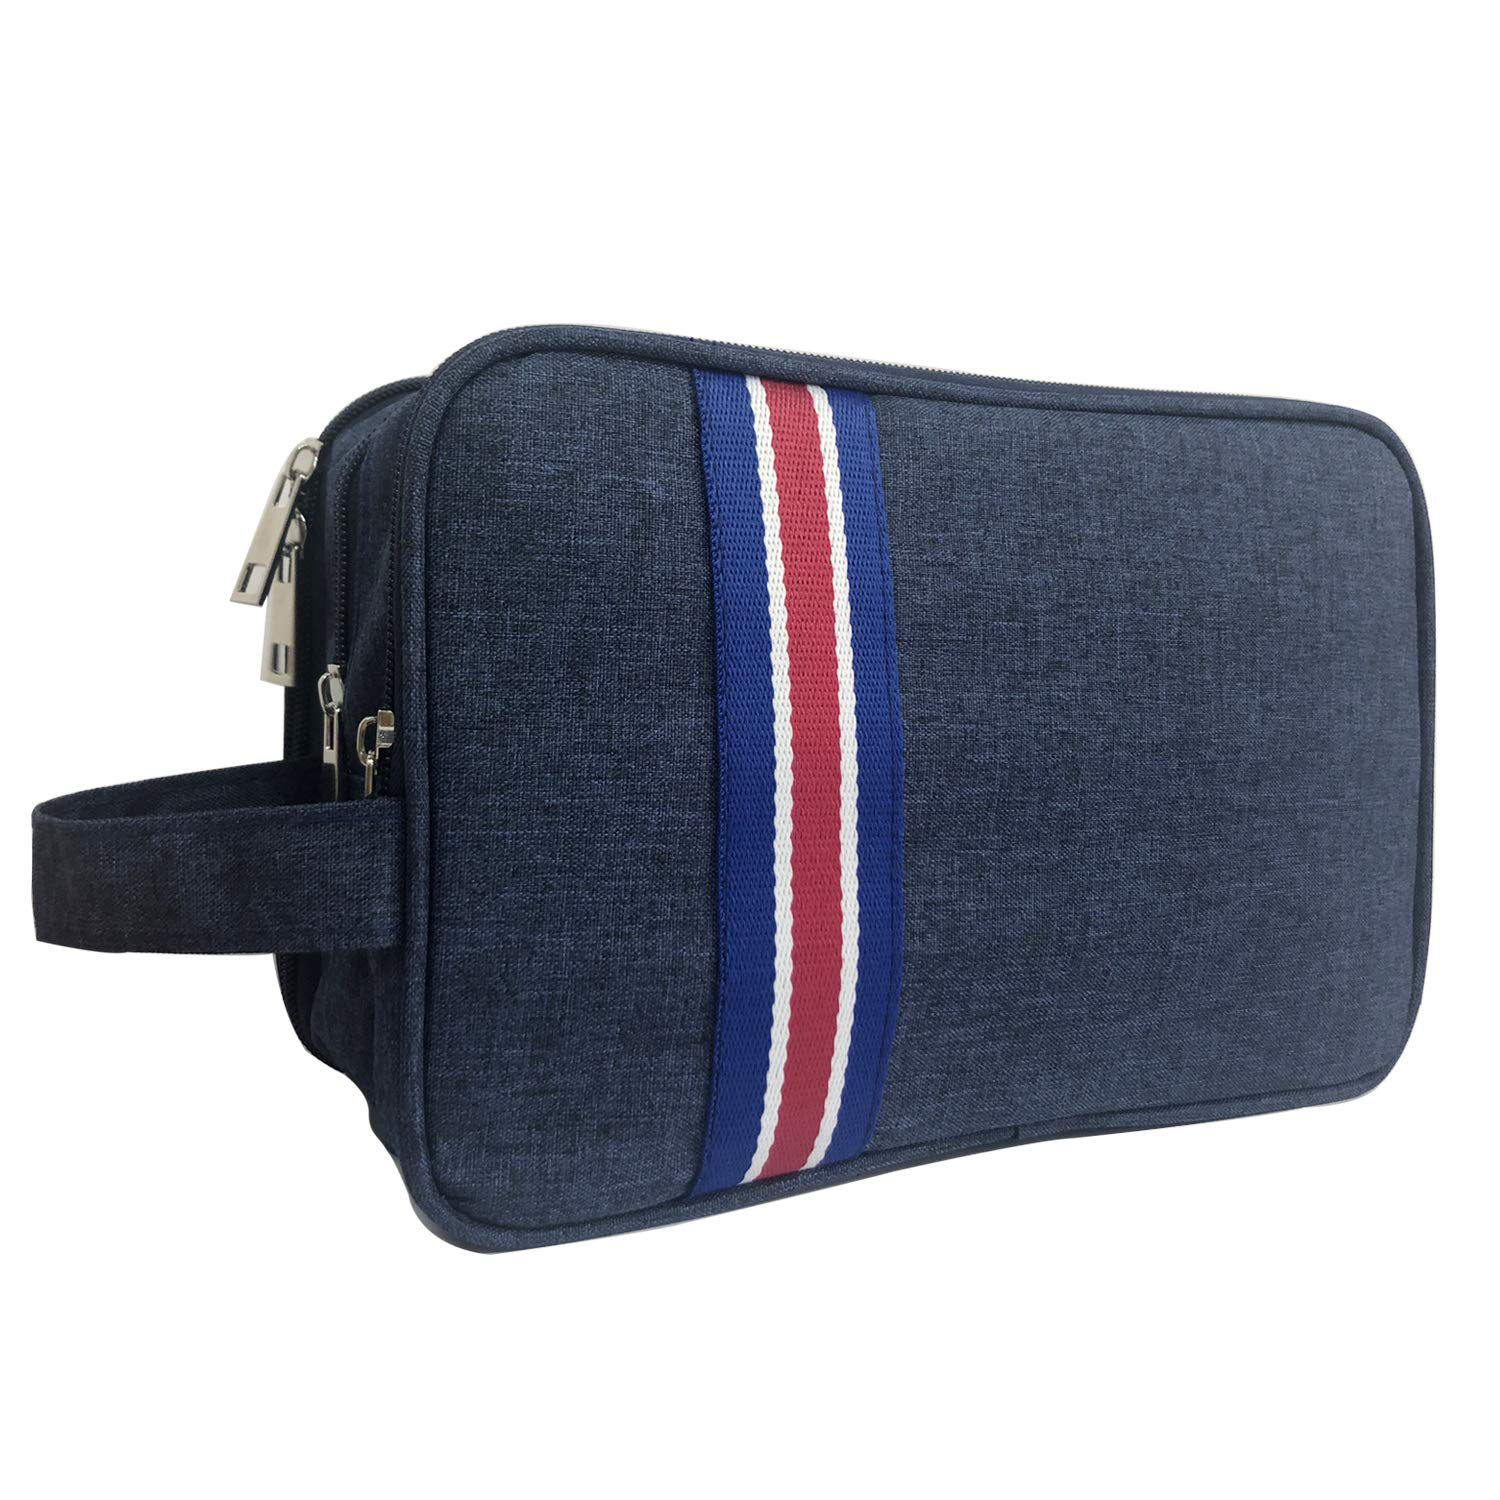 House Of Quirk Blue Mens Toiletry Bag Buy House Of Quirk Blue Mens Toiletry Bag Online At Low Price Snapdeal